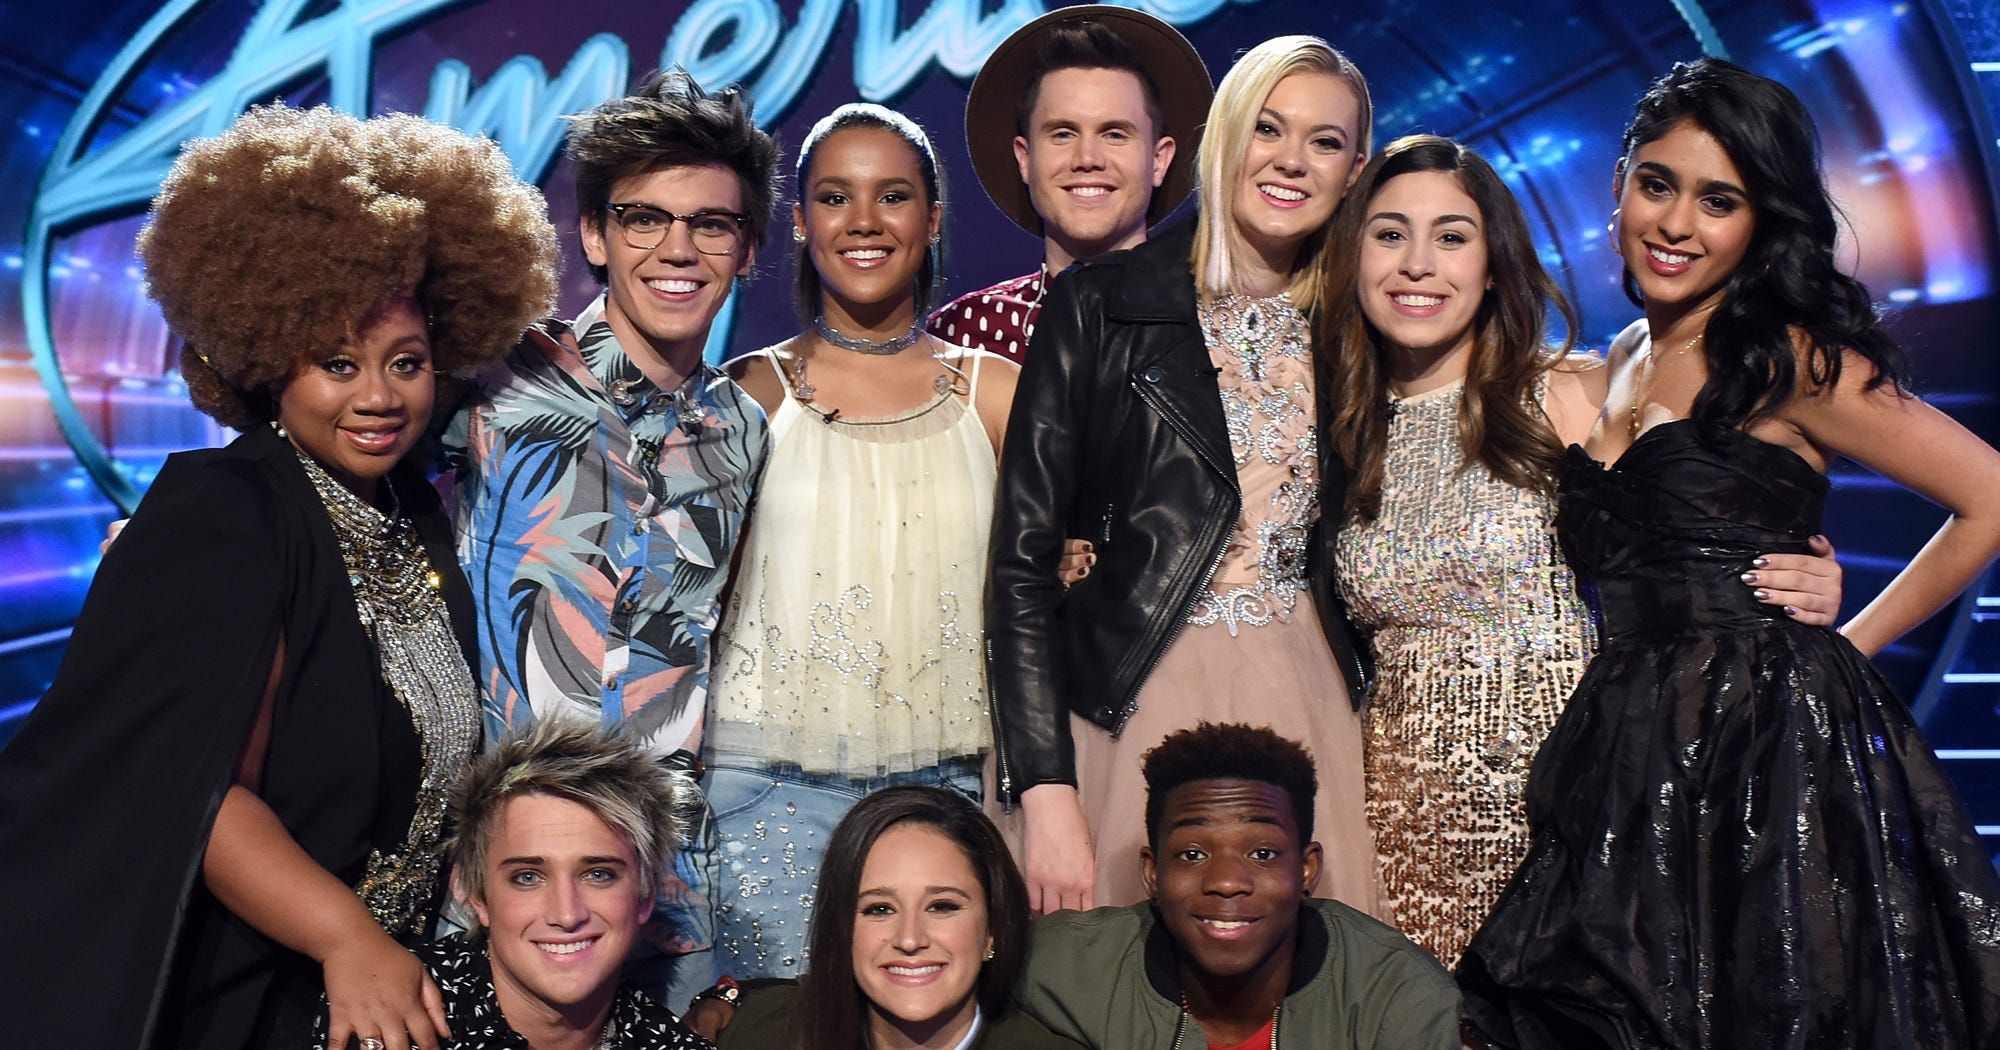 American idol contestant comes out of the closet during audition